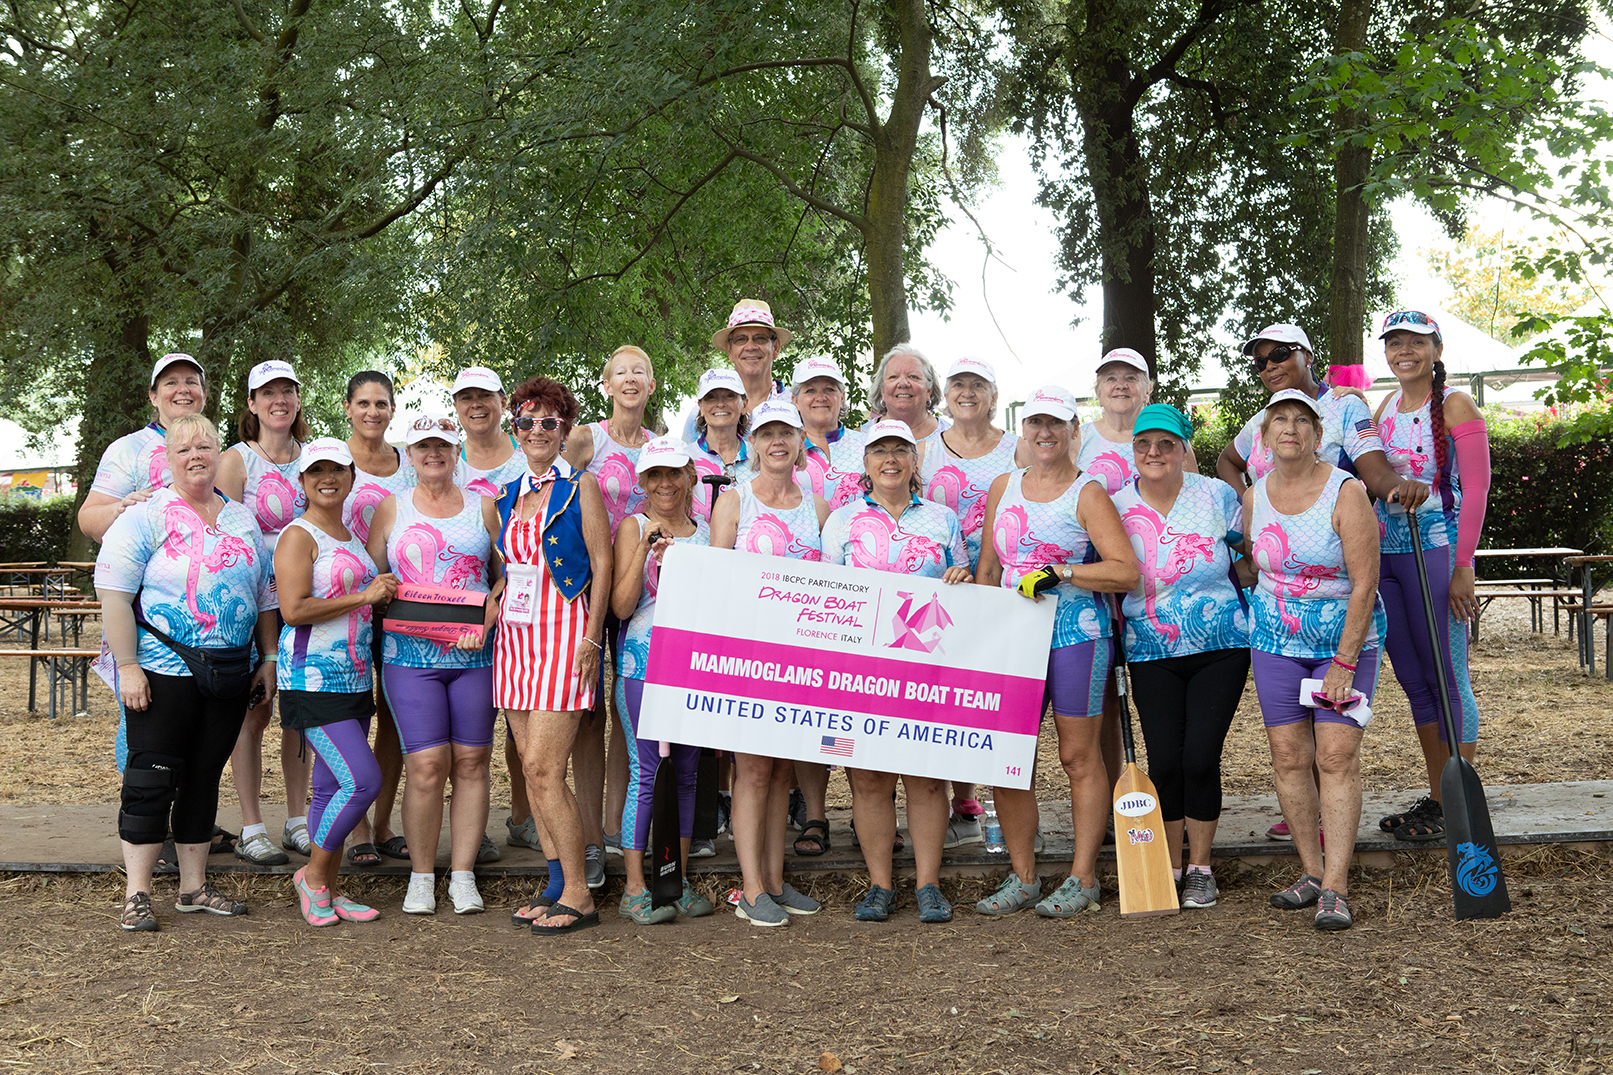 Mammoglams Dragon Boat Team - USA